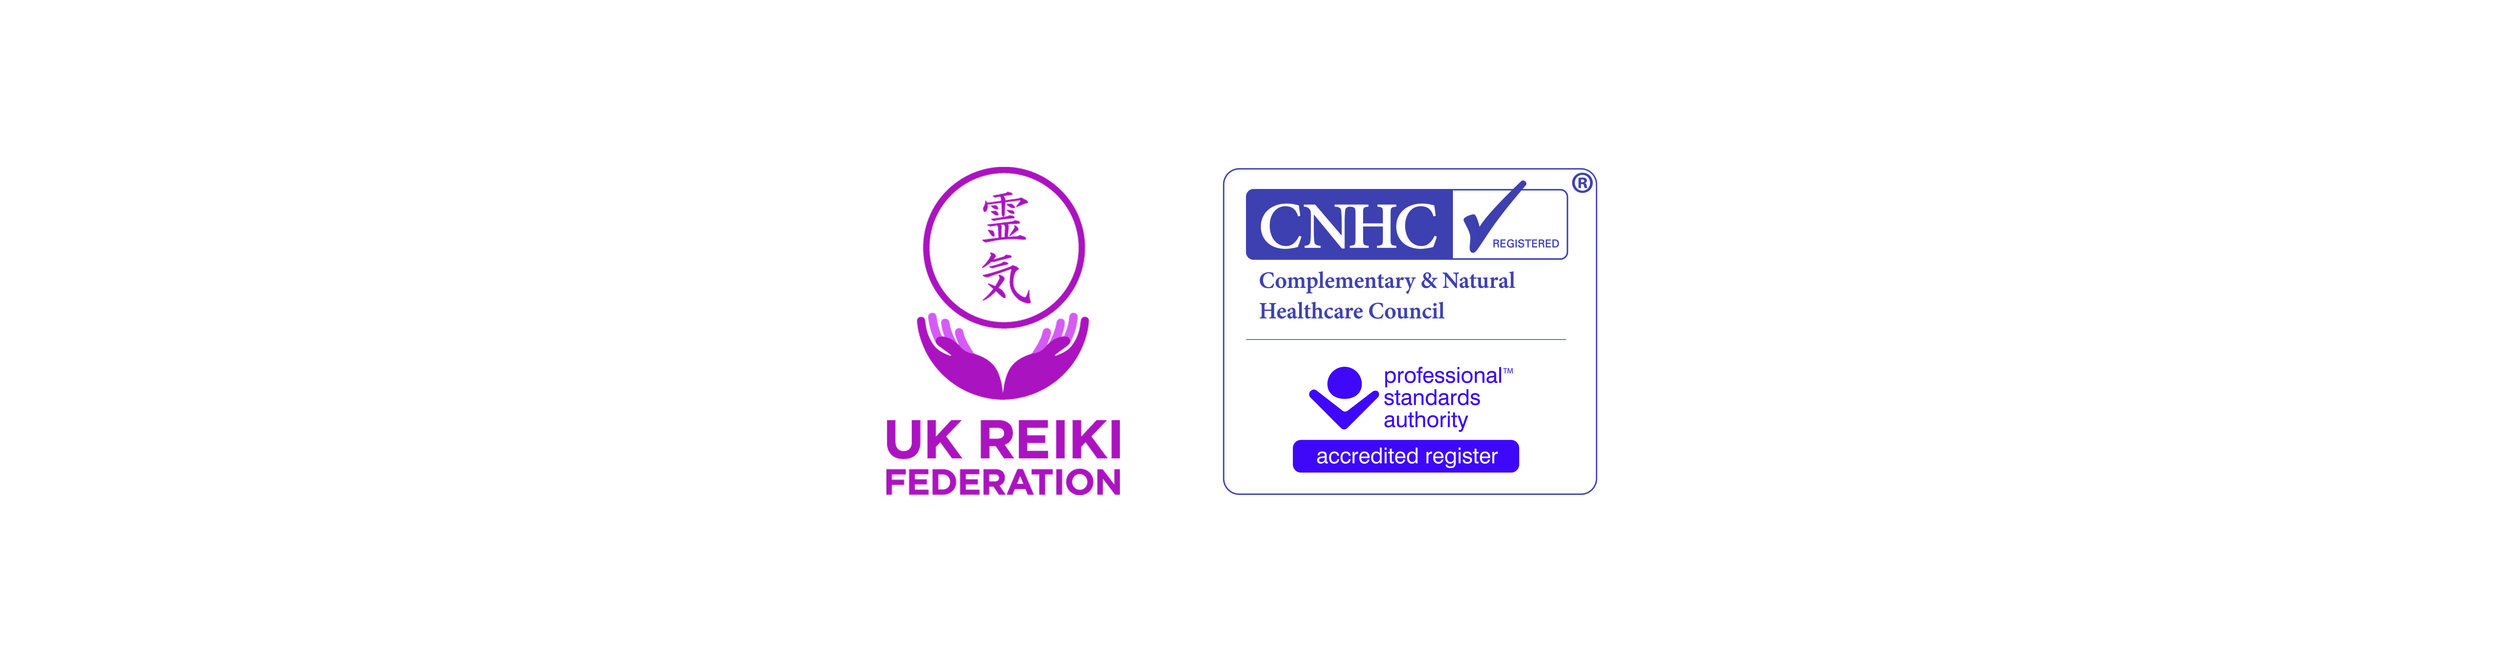 UK Reiki Federation Member  +  Complementary & Natural Healthcare Council (CHNC) Registered